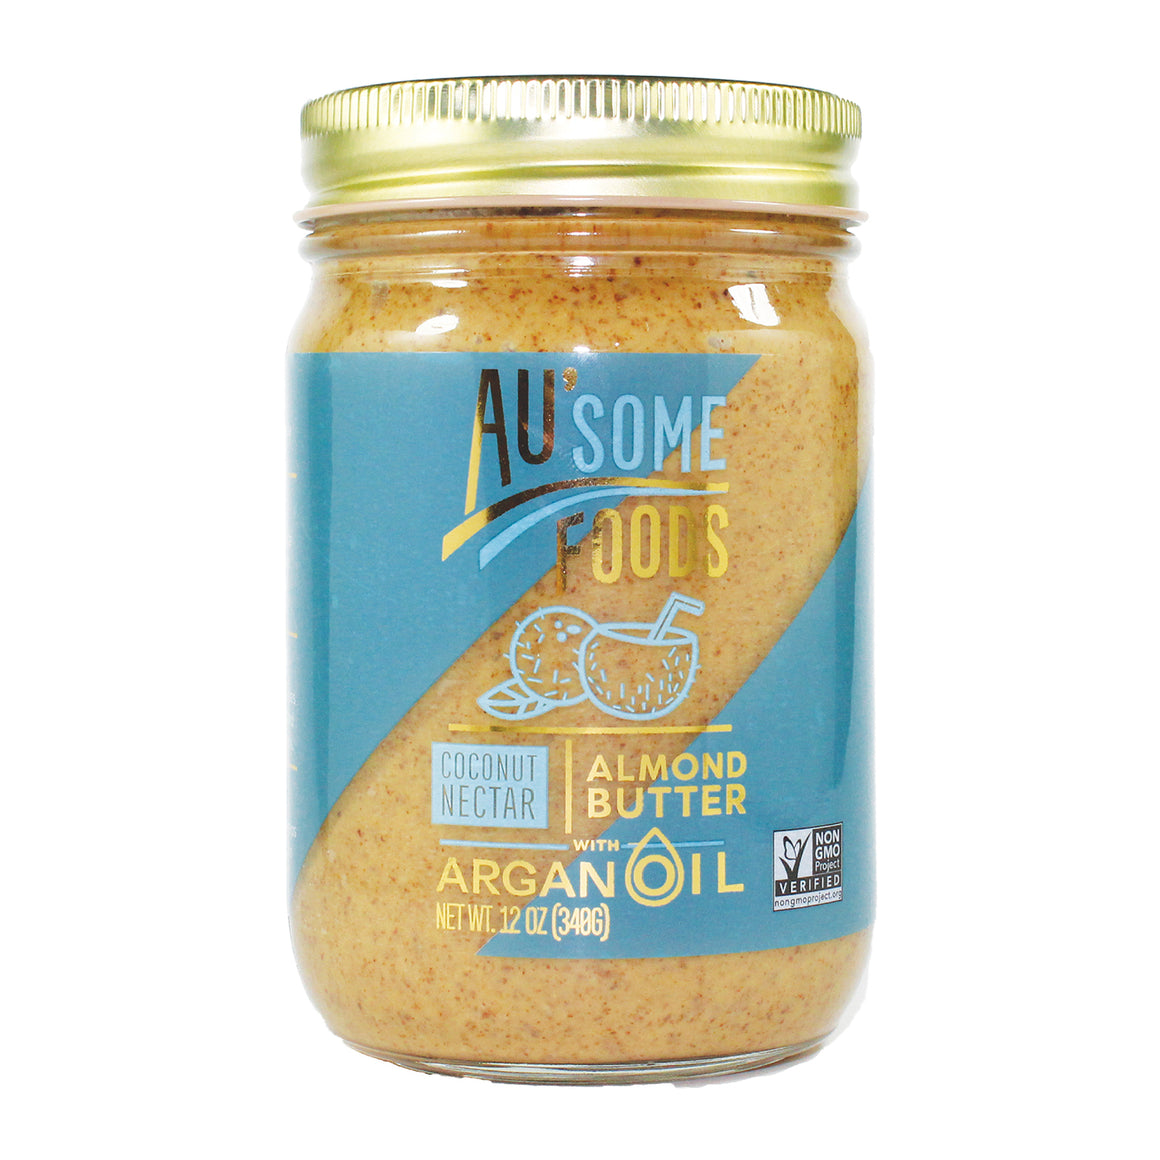 best almond butter. Au'some almond butter with argan oil. coconut nectar. Au'some Foods